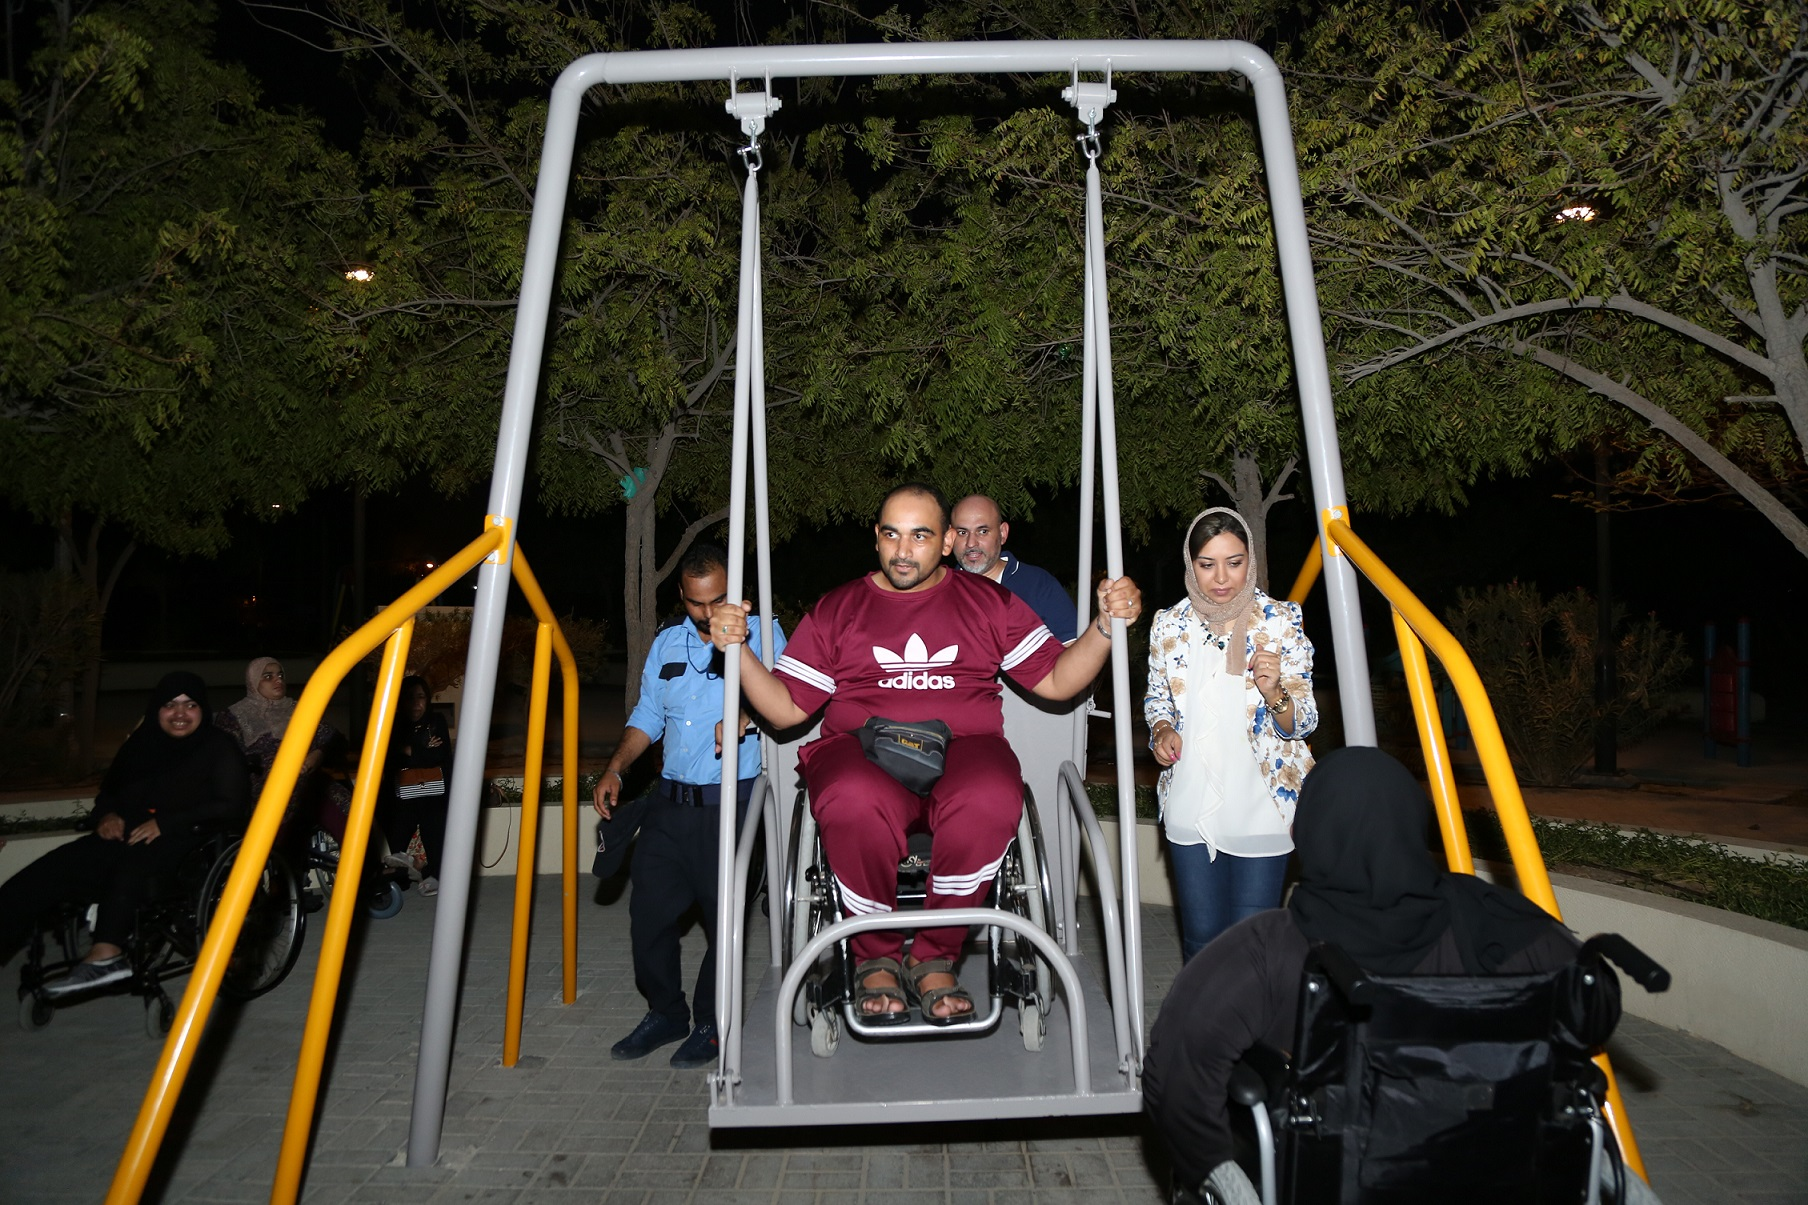 The Municipality of the Southern District equips the Khalifa Grand Park with games for people with special needs